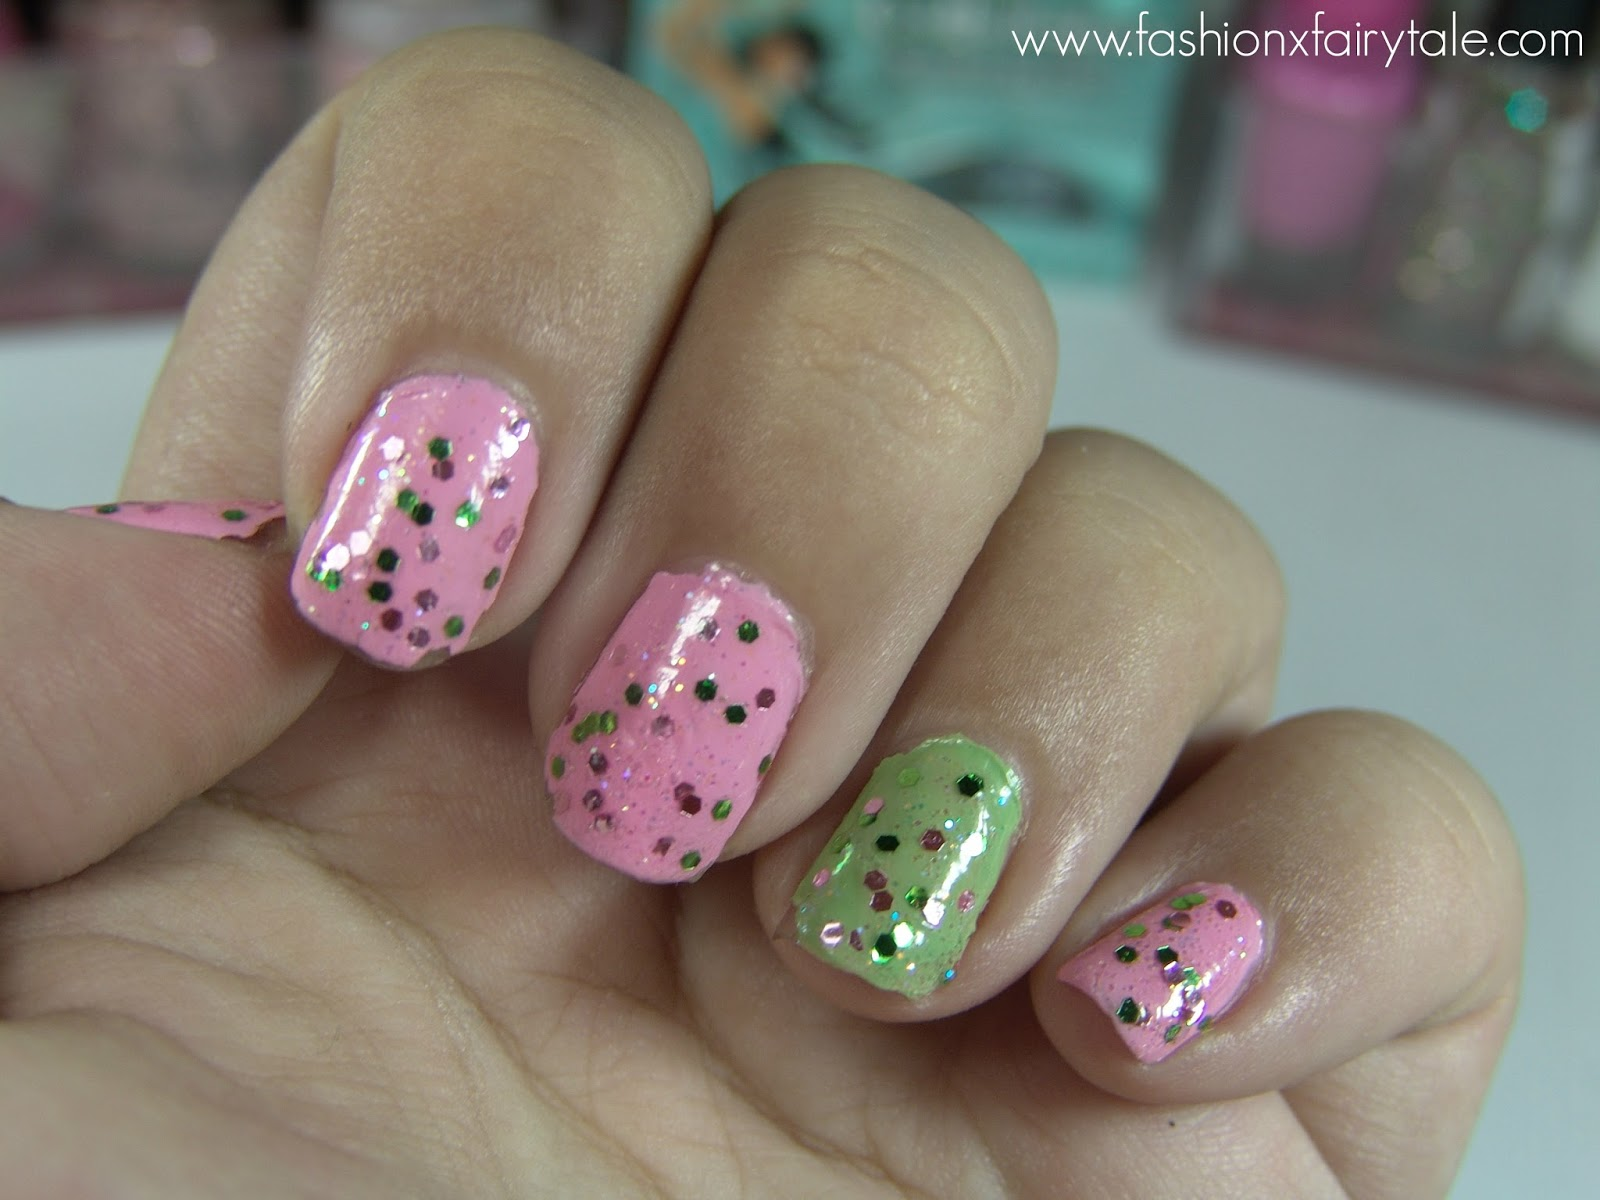 Nails | That Disco Ball Gossiped on the First Date